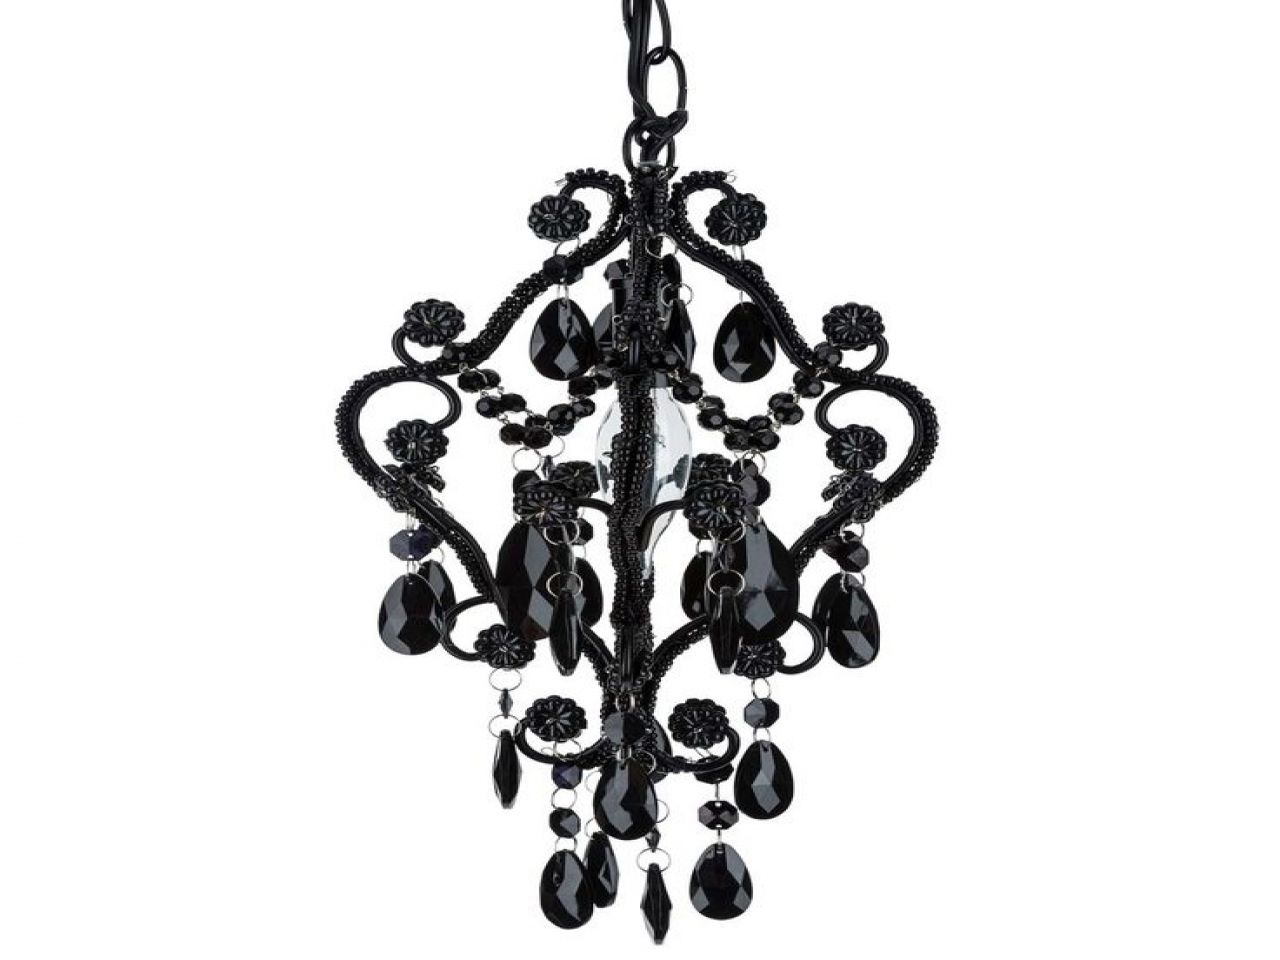 1280x960 Best 44 Magnum Ammo 44 Best Shop Crystal Chandeliers By Amalfi